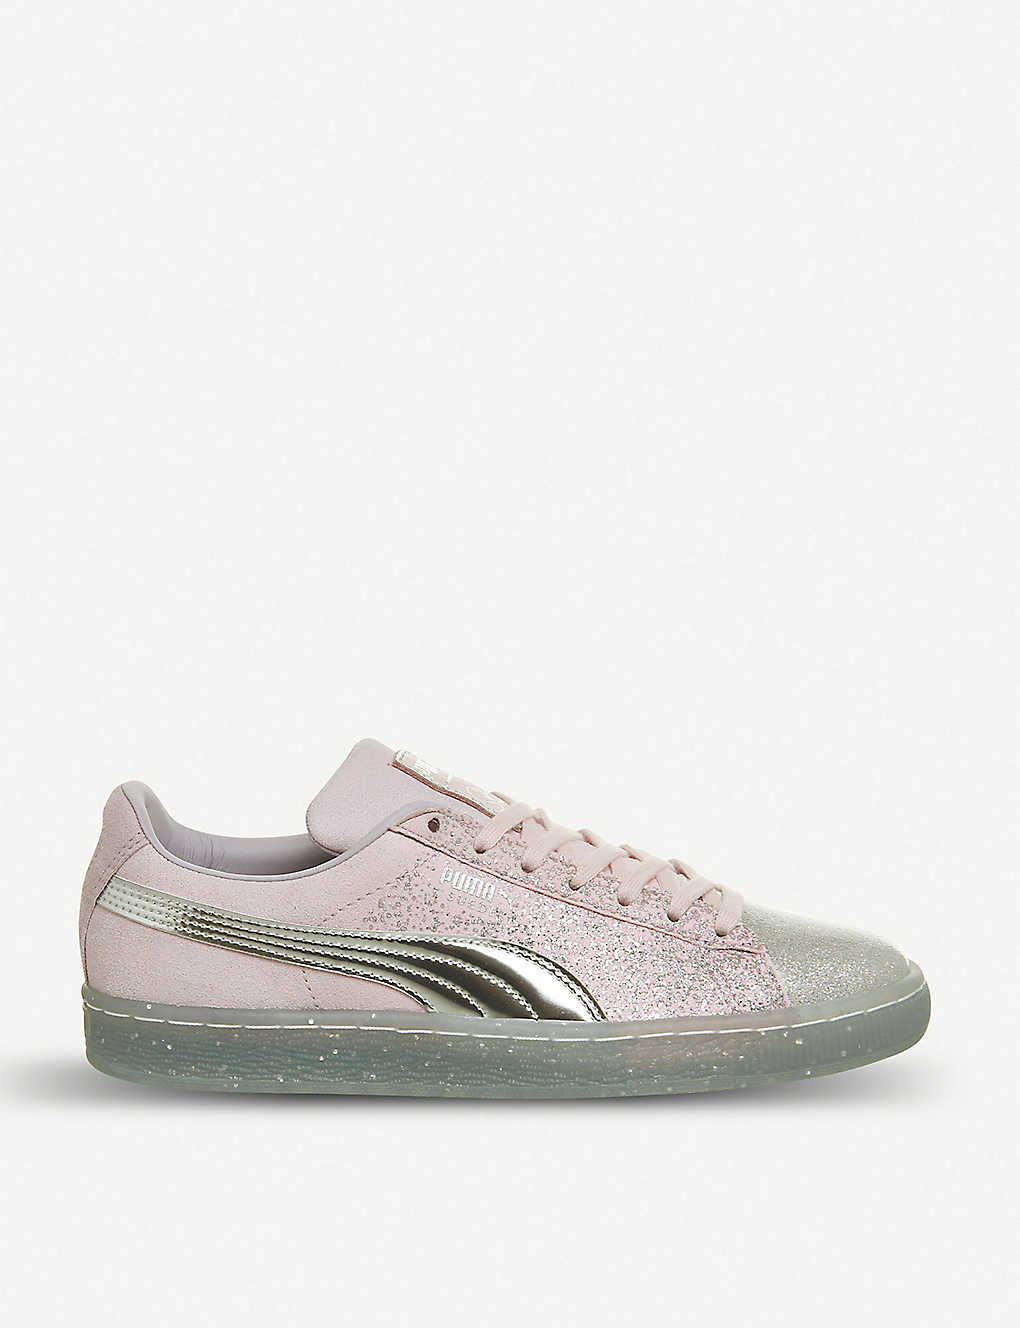 de613554e5be PUMA - Puma x Sophia Webster Suede glitter princess trainers ...